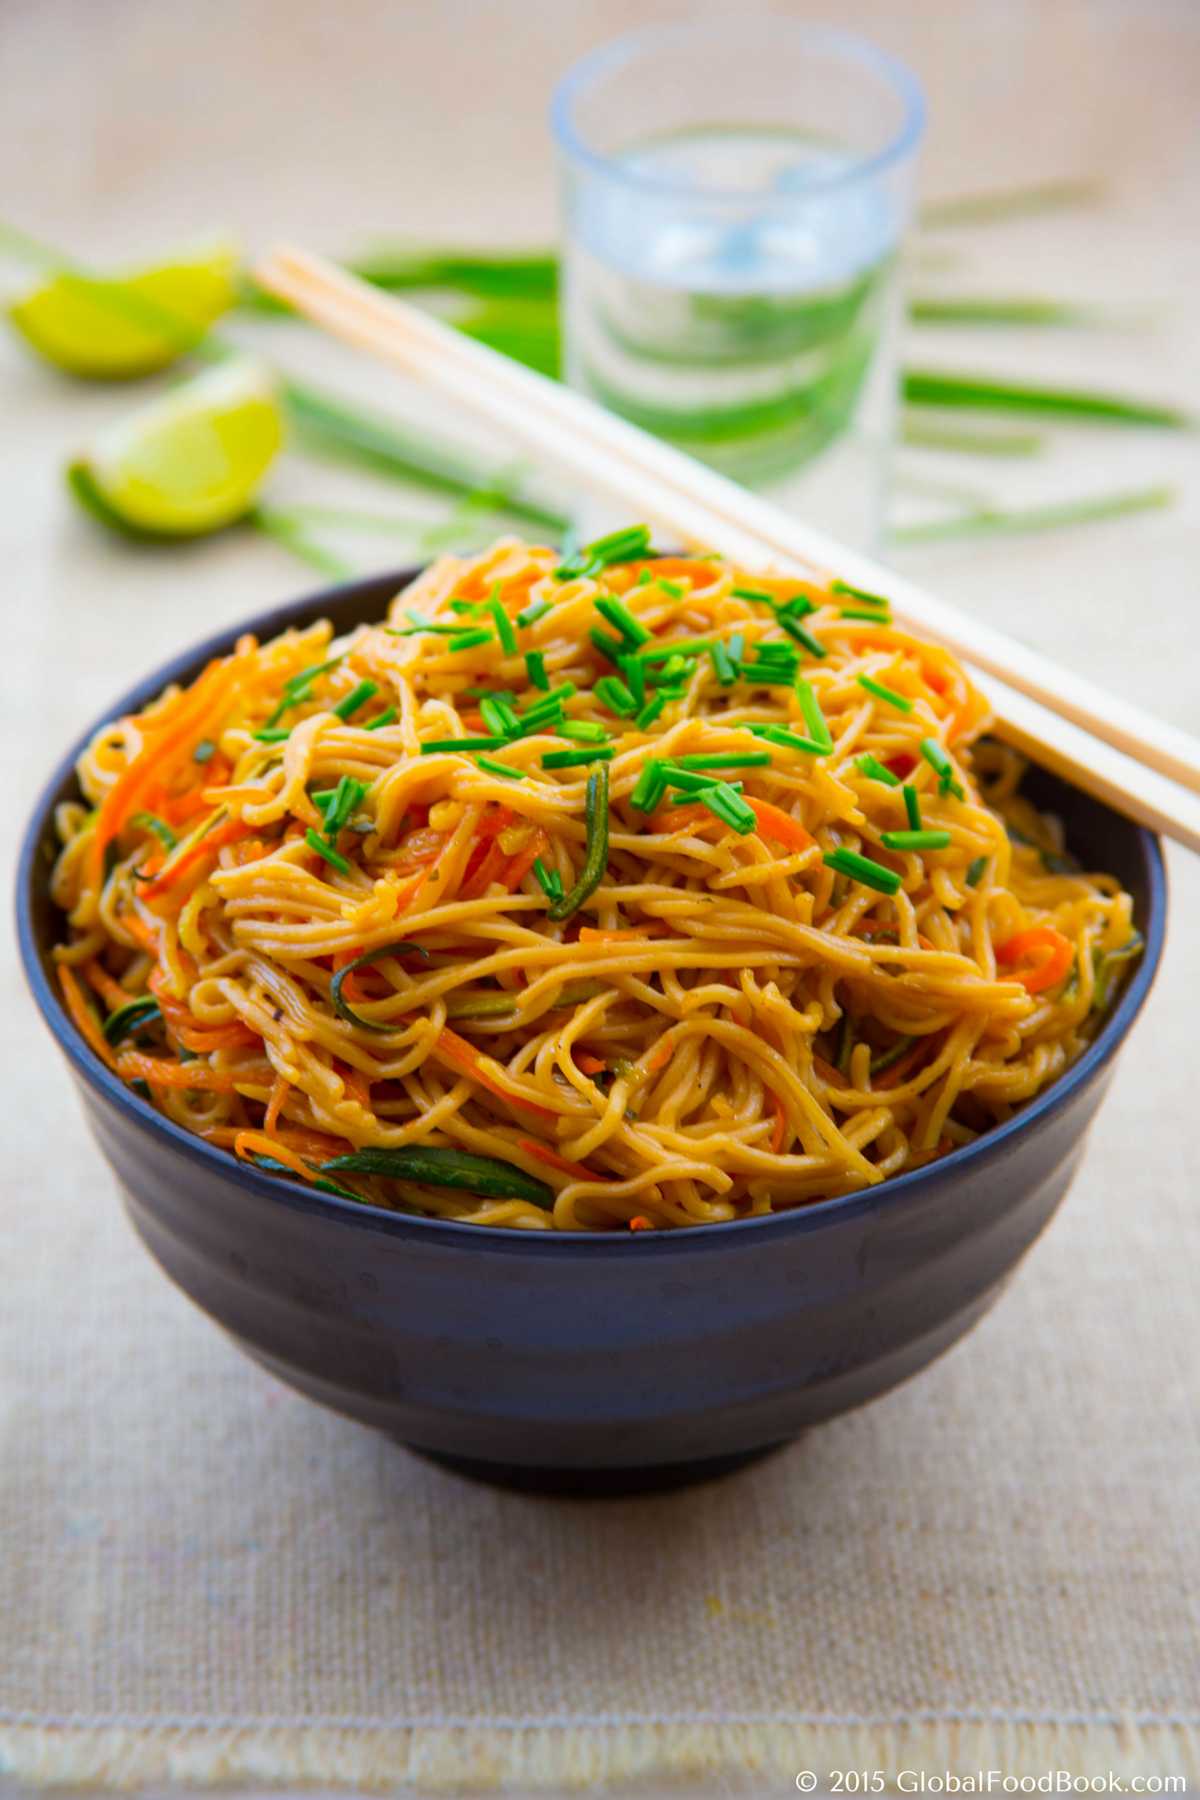 15 MINUTES ZUCCHINI AND CARROT NOODLES